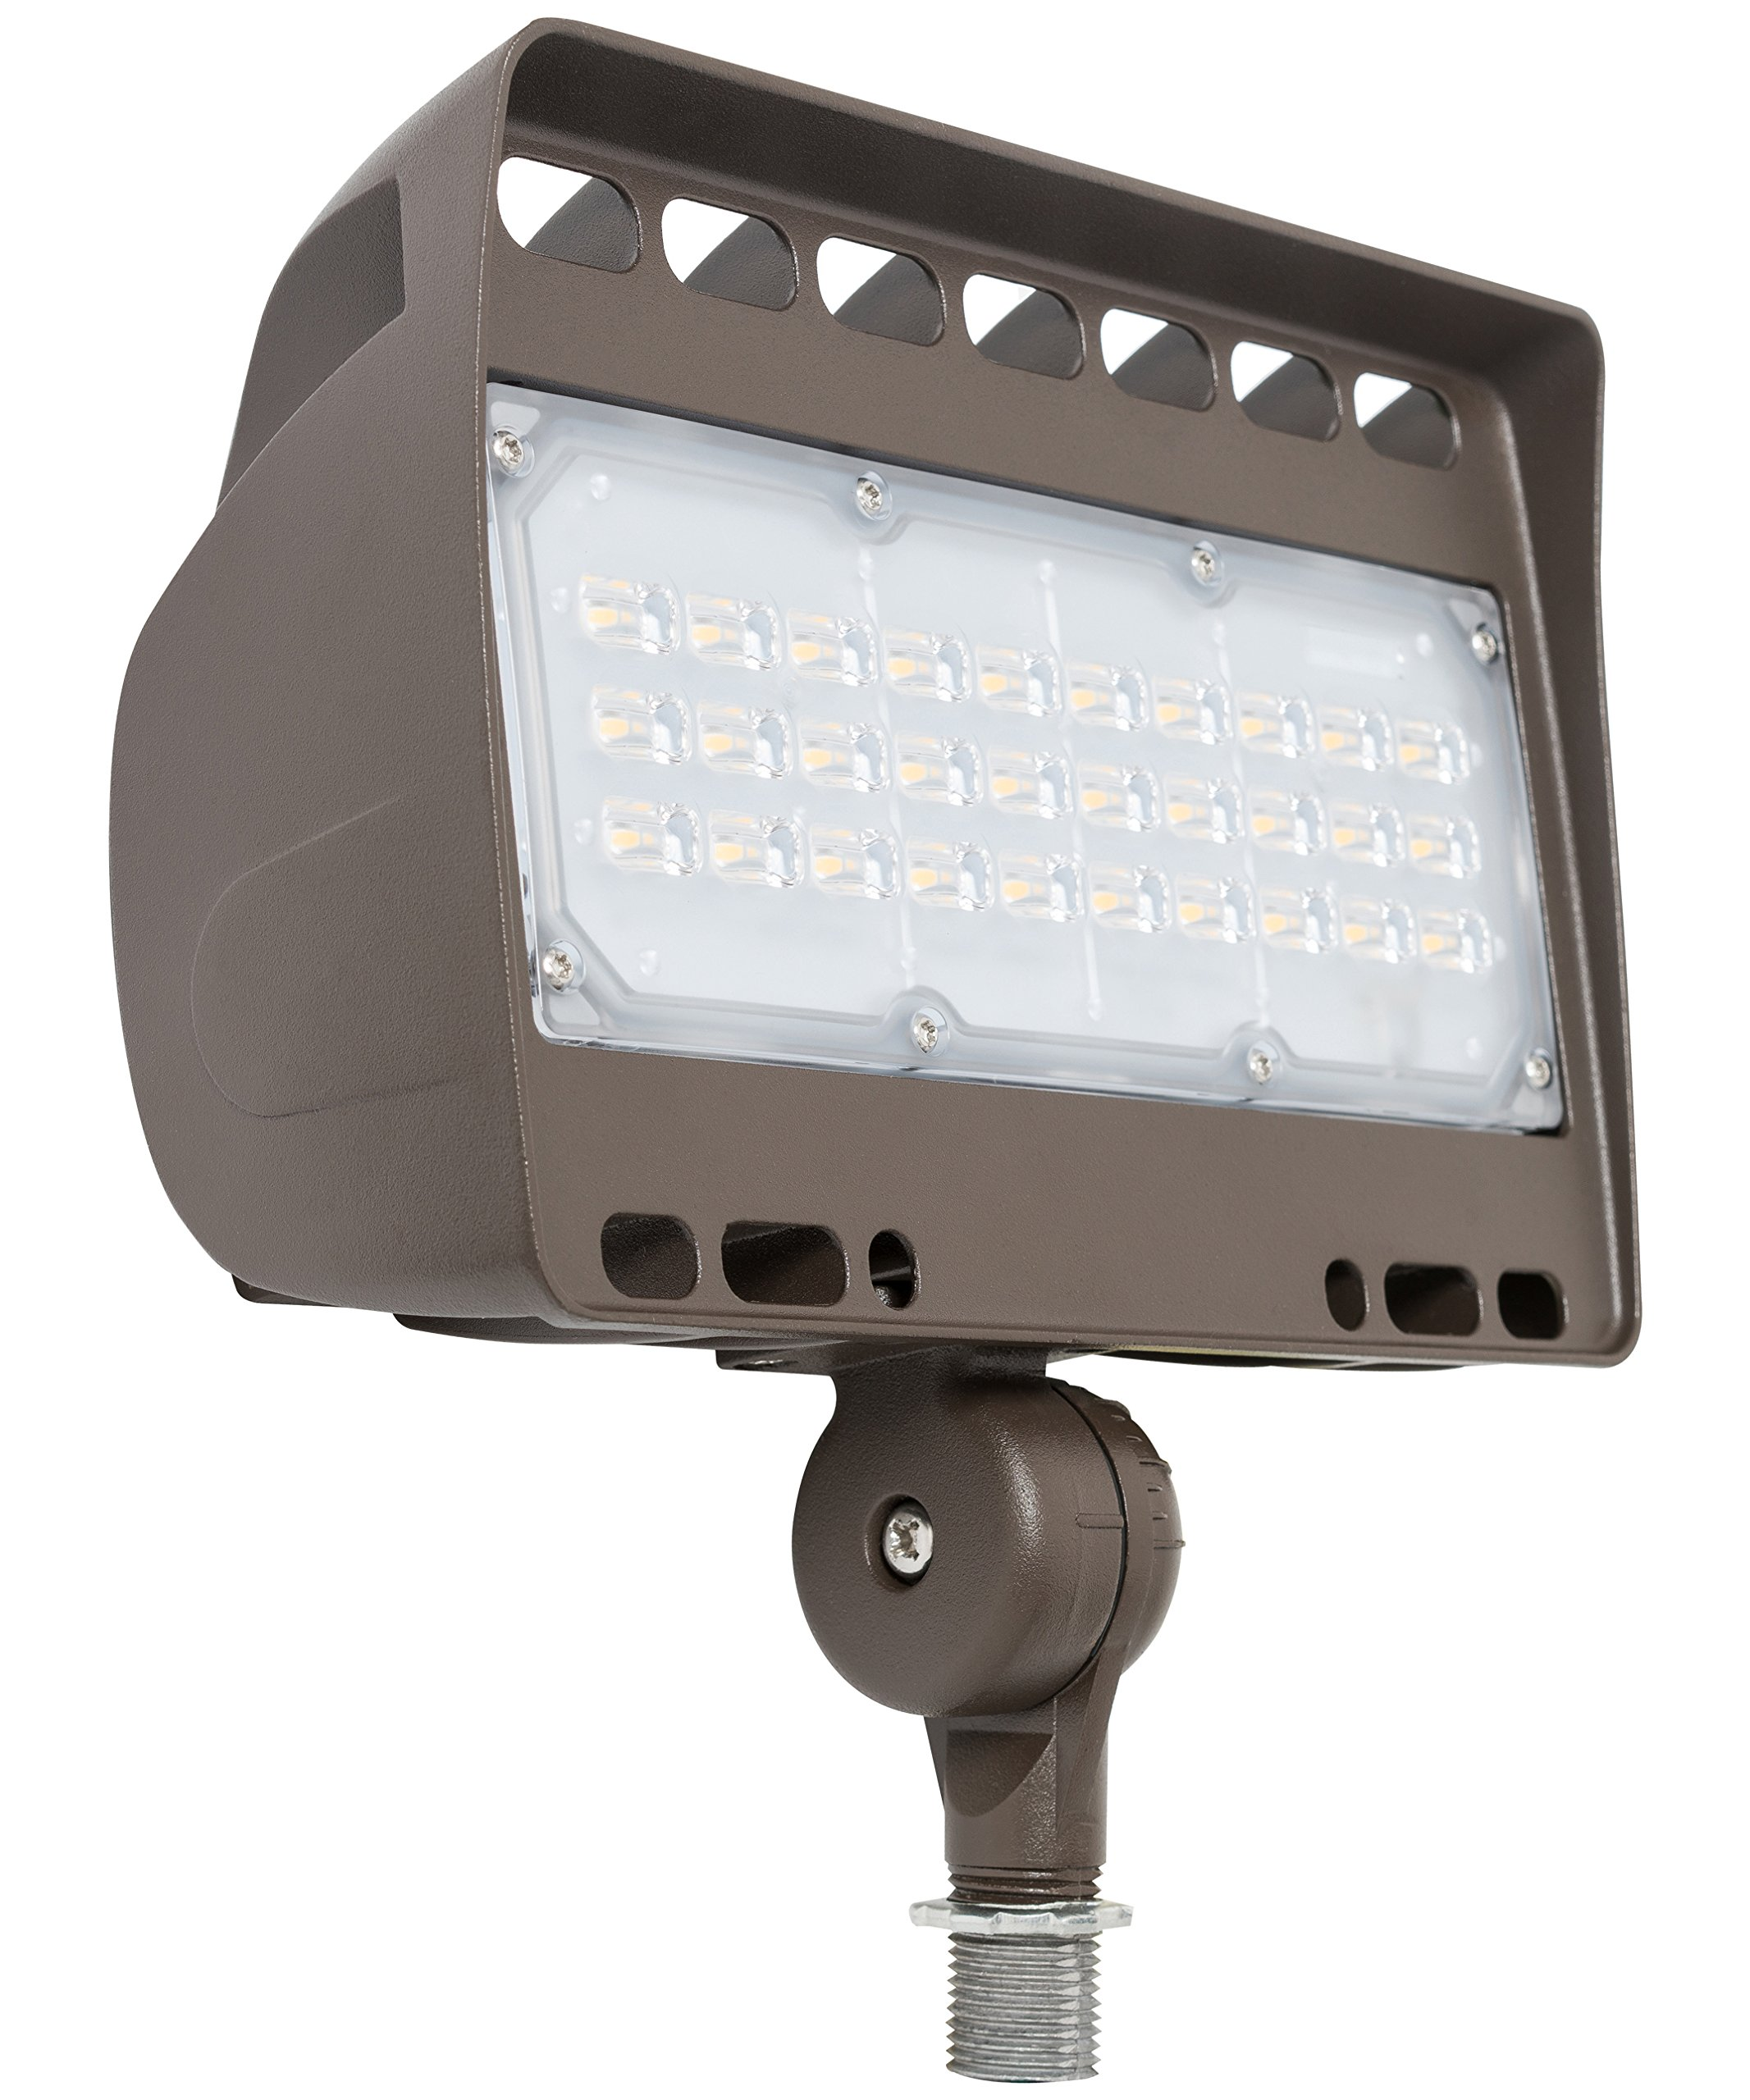 Westgate LF4-50CW-KN Westagate LF4 LED Flood Light, 50 Watt, 5000K Cool White